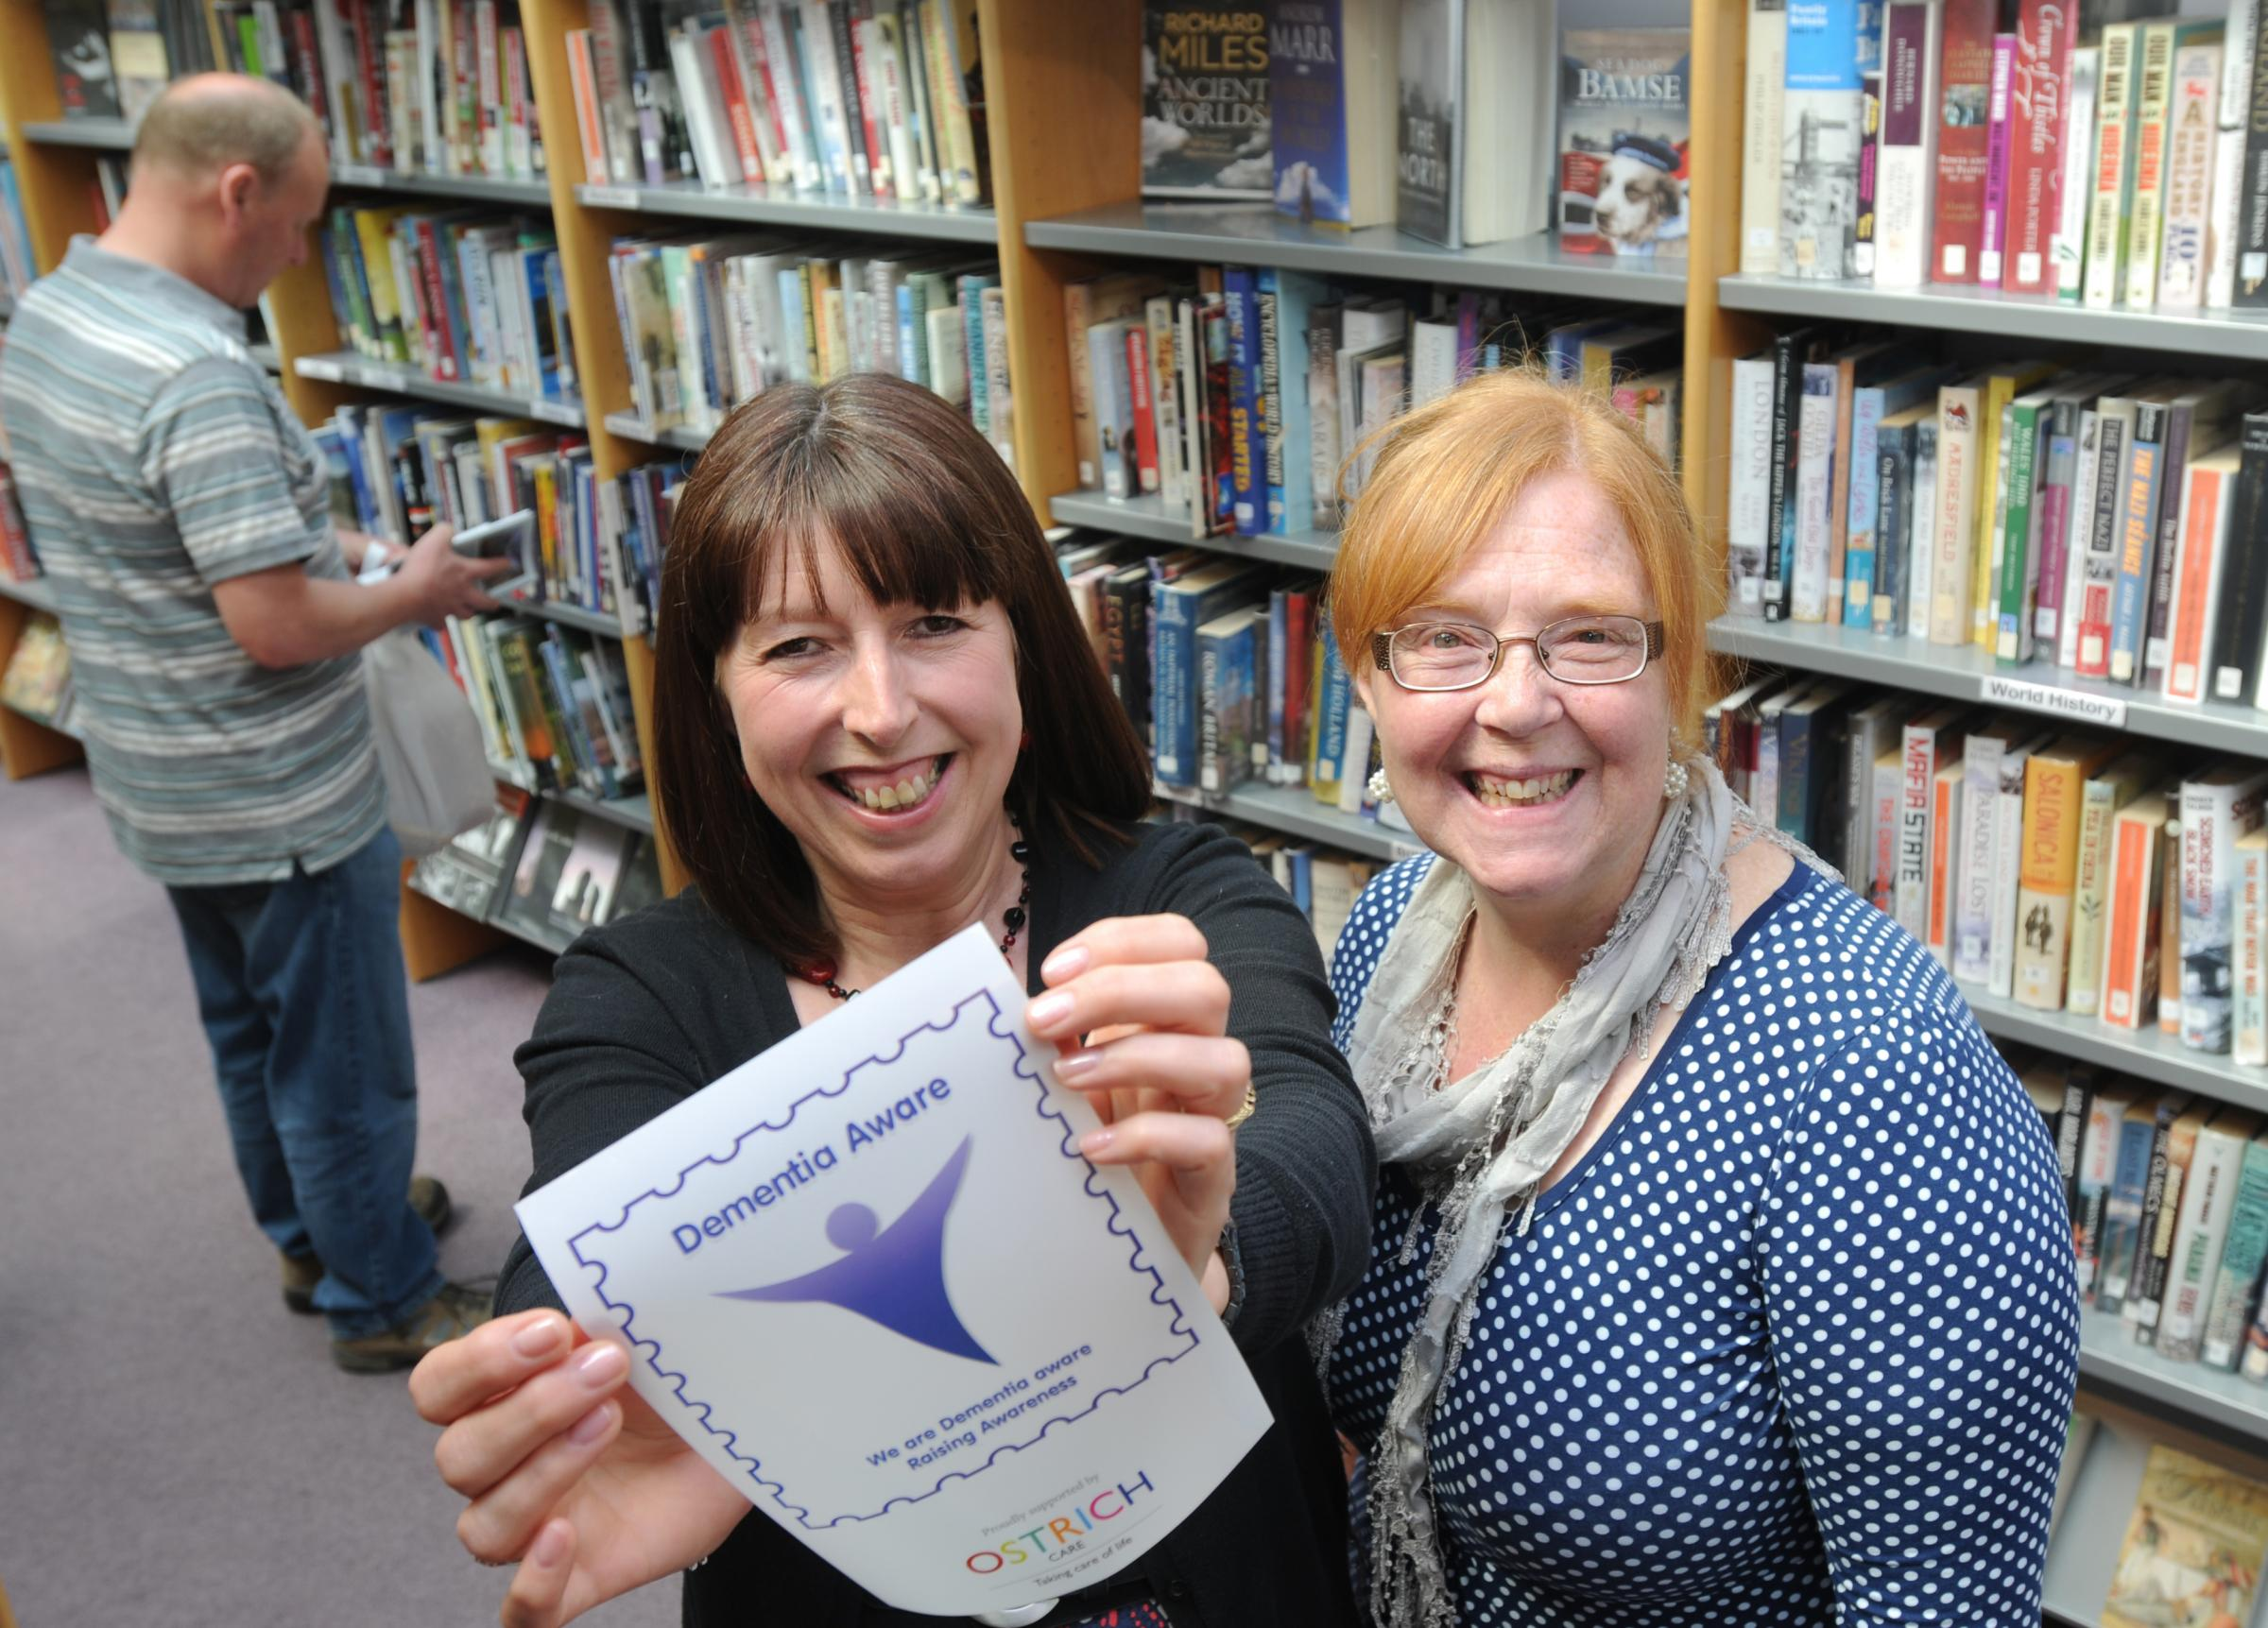 Julie Atkinson, left, service development officer at Pickering library, and Kim Penn